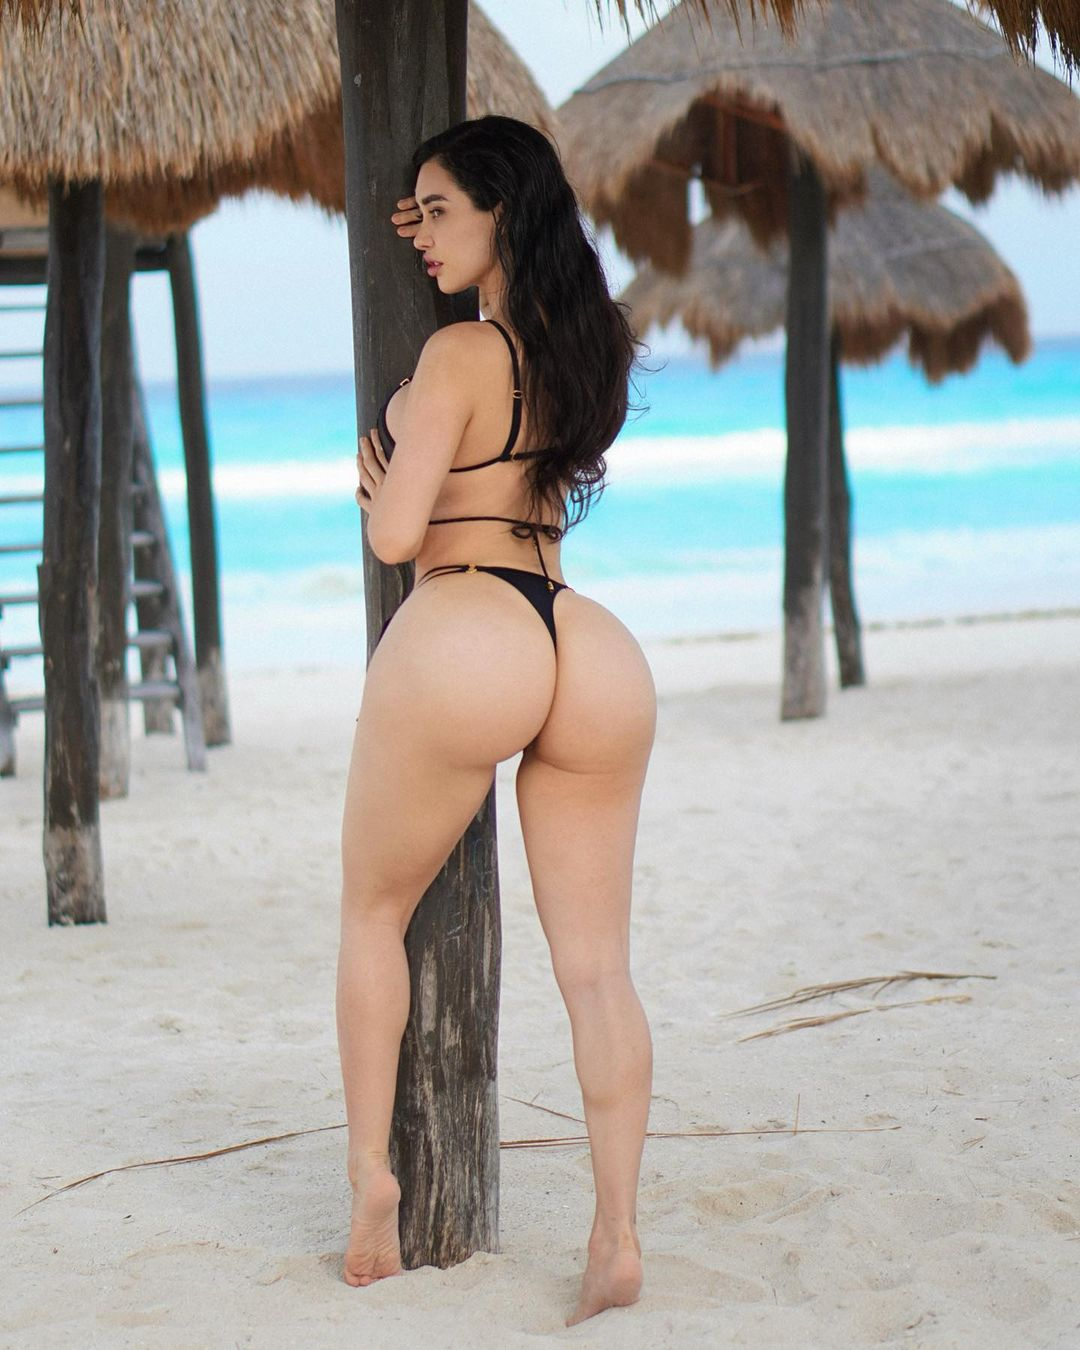 Instagram Model Joselyn Cano Hottest Pictures (25 Photos)